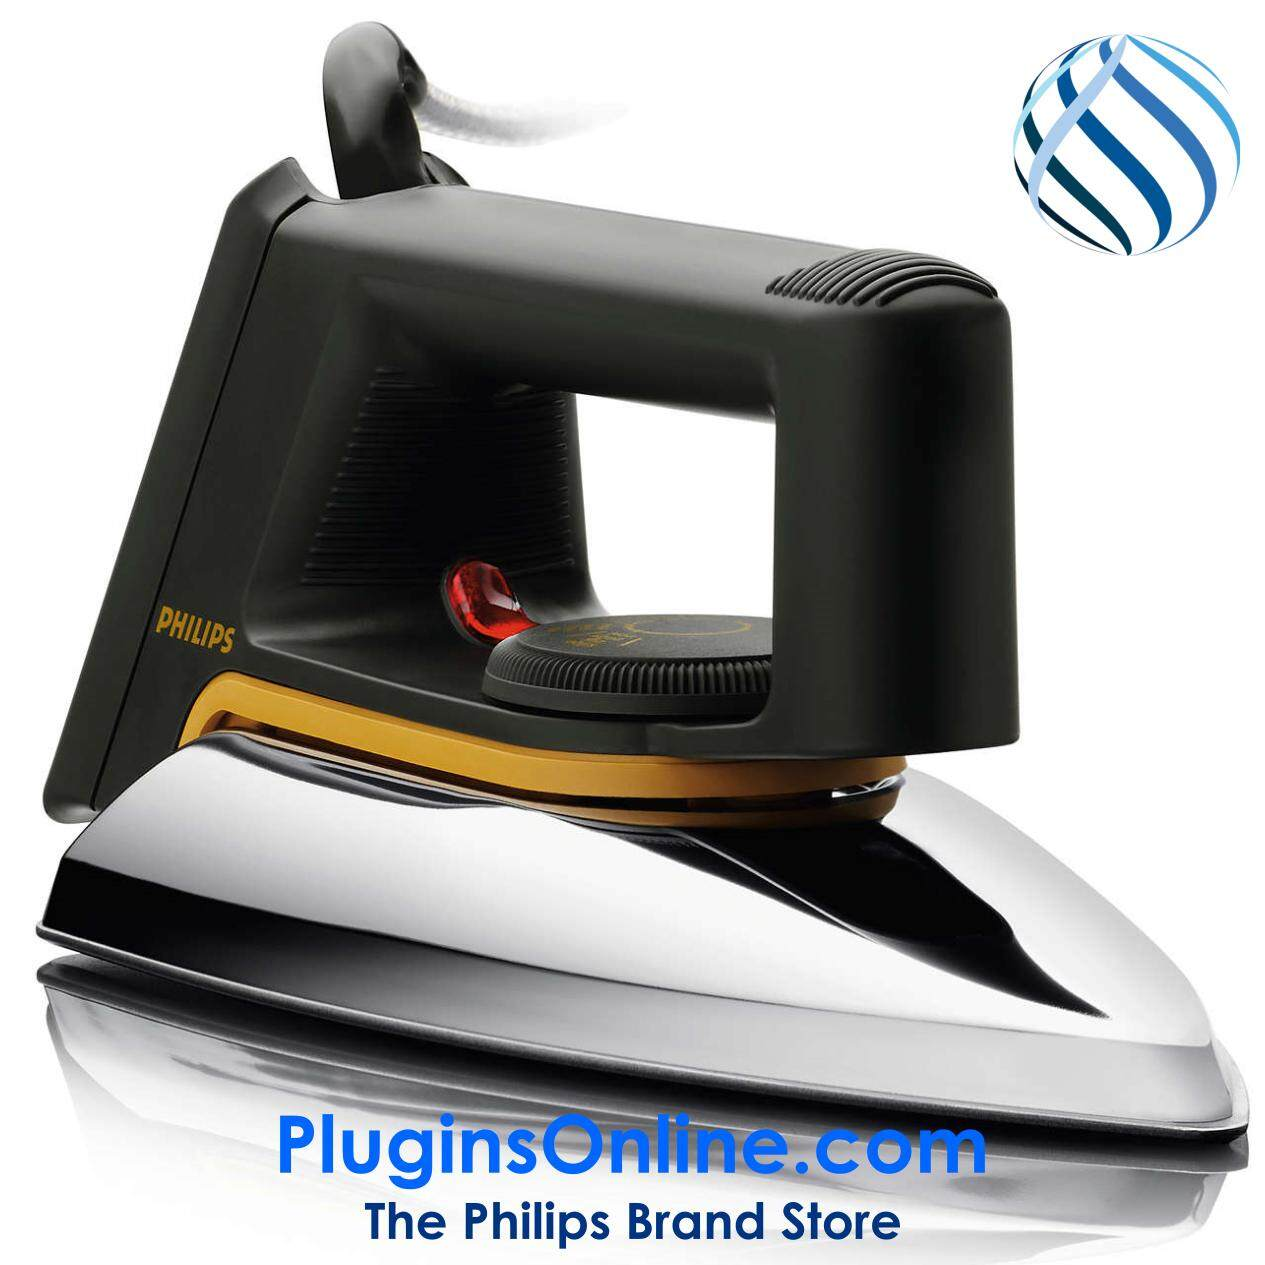 Philips Hd1172/01 Classic Dry Iron With Pilot Lamp (hd1172 ) By Philips Brand Store - Plugins.